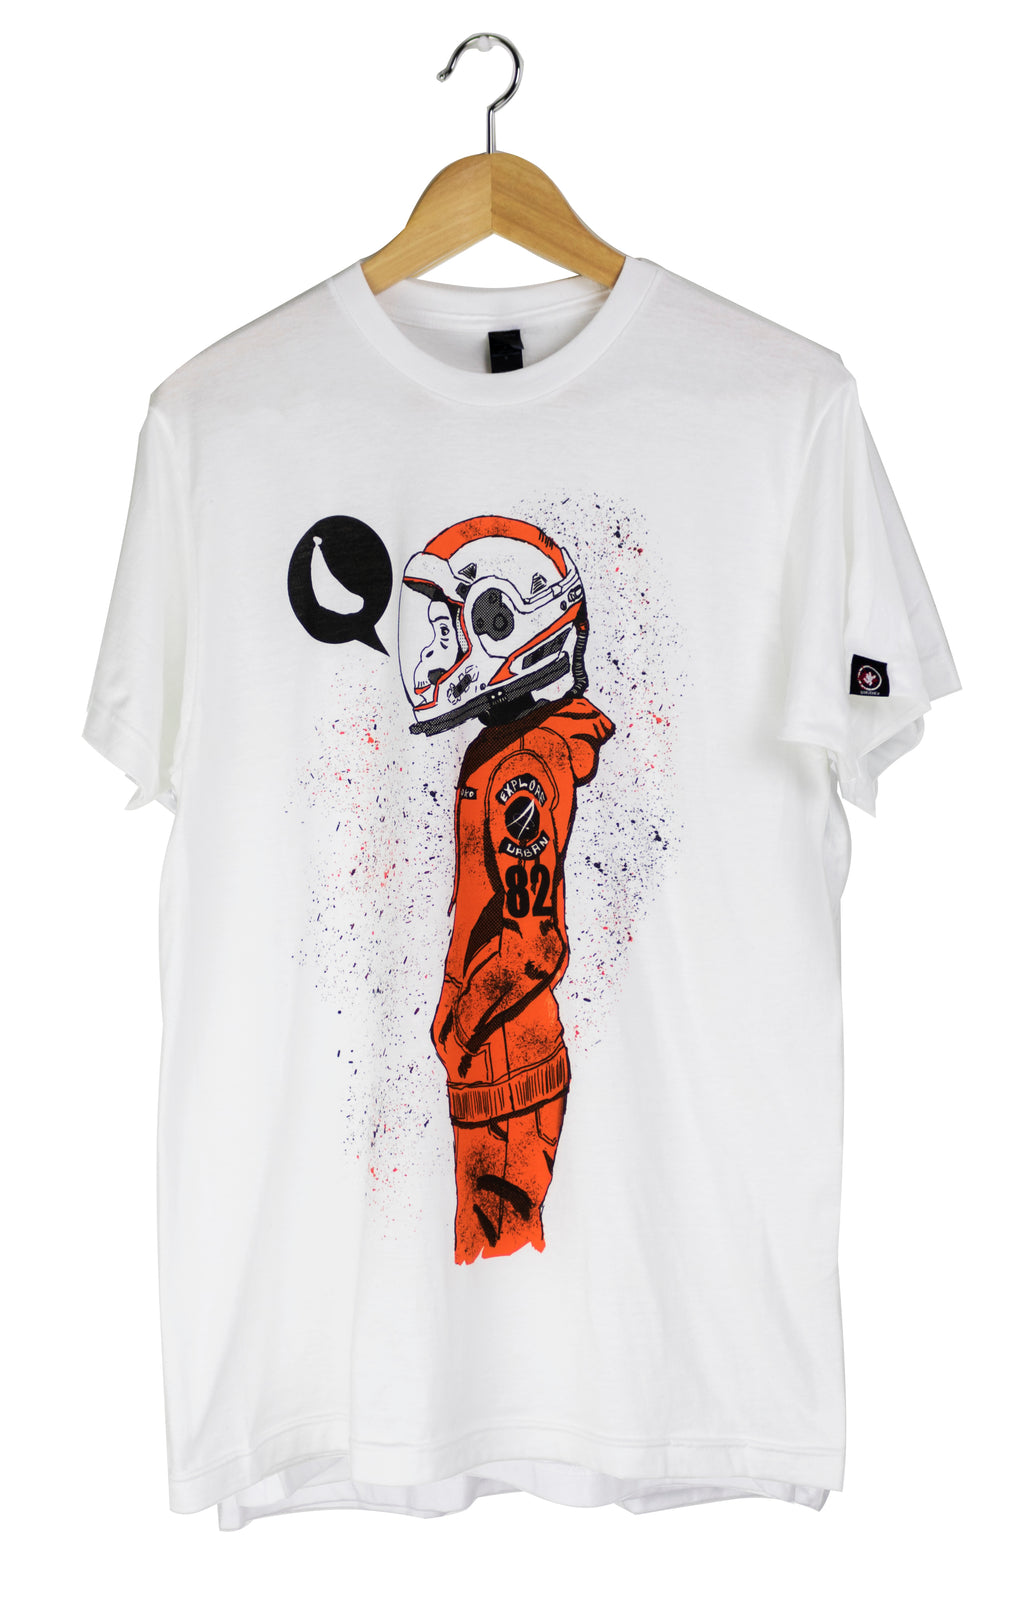 Urban Space Monkey T-Shirt